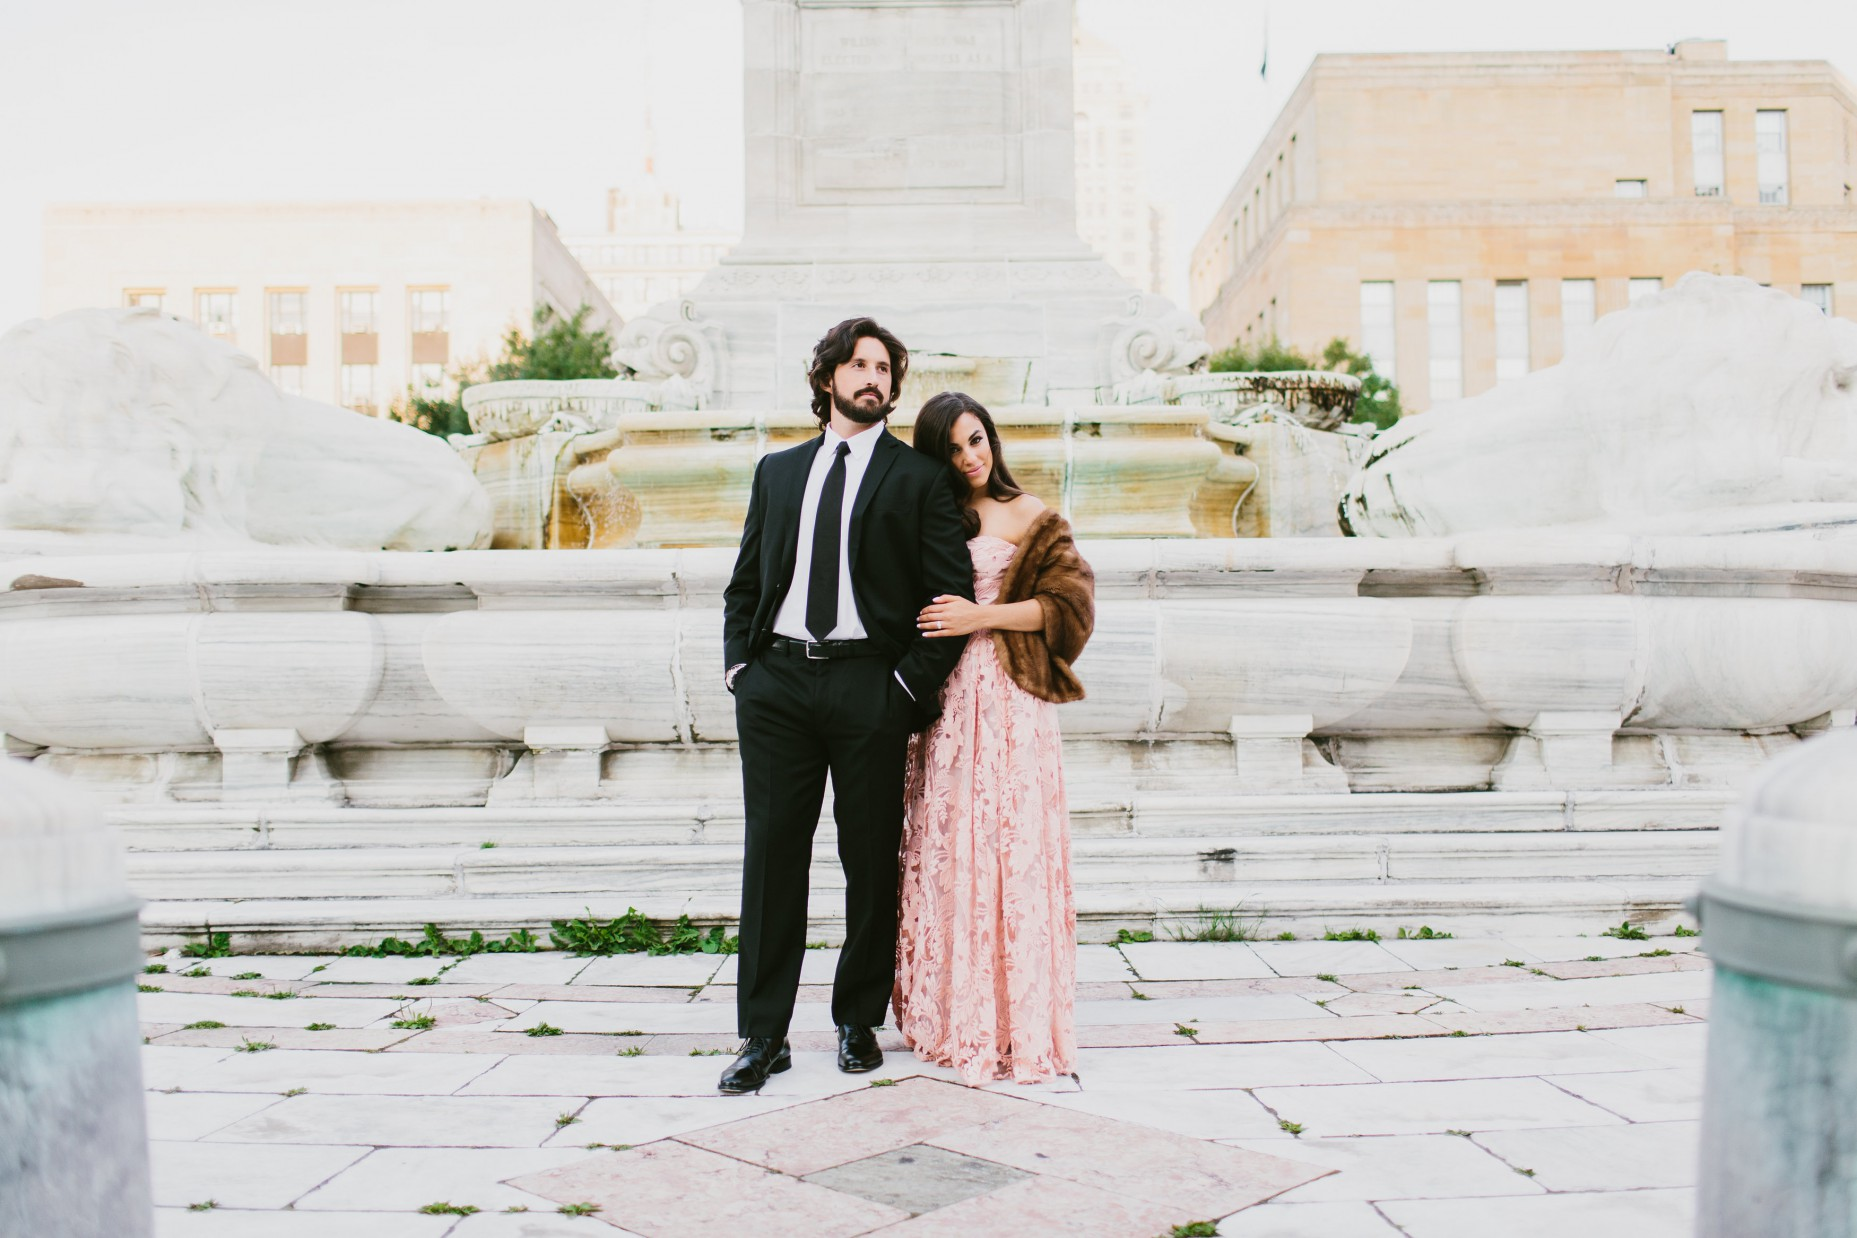 portraits by beth insalaco – engagement